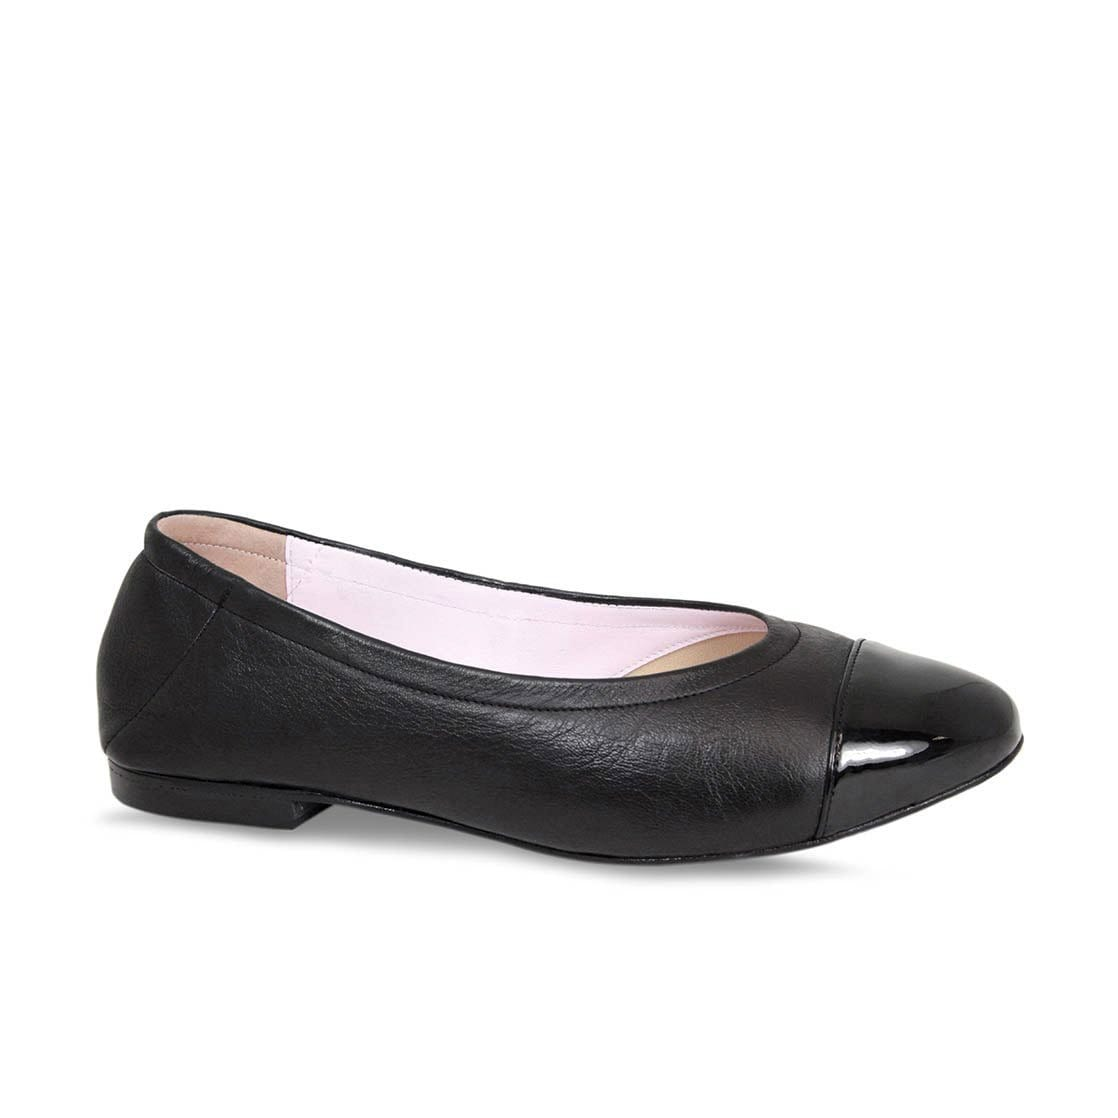 Black Leather Ballerina with Patent Toe Cap